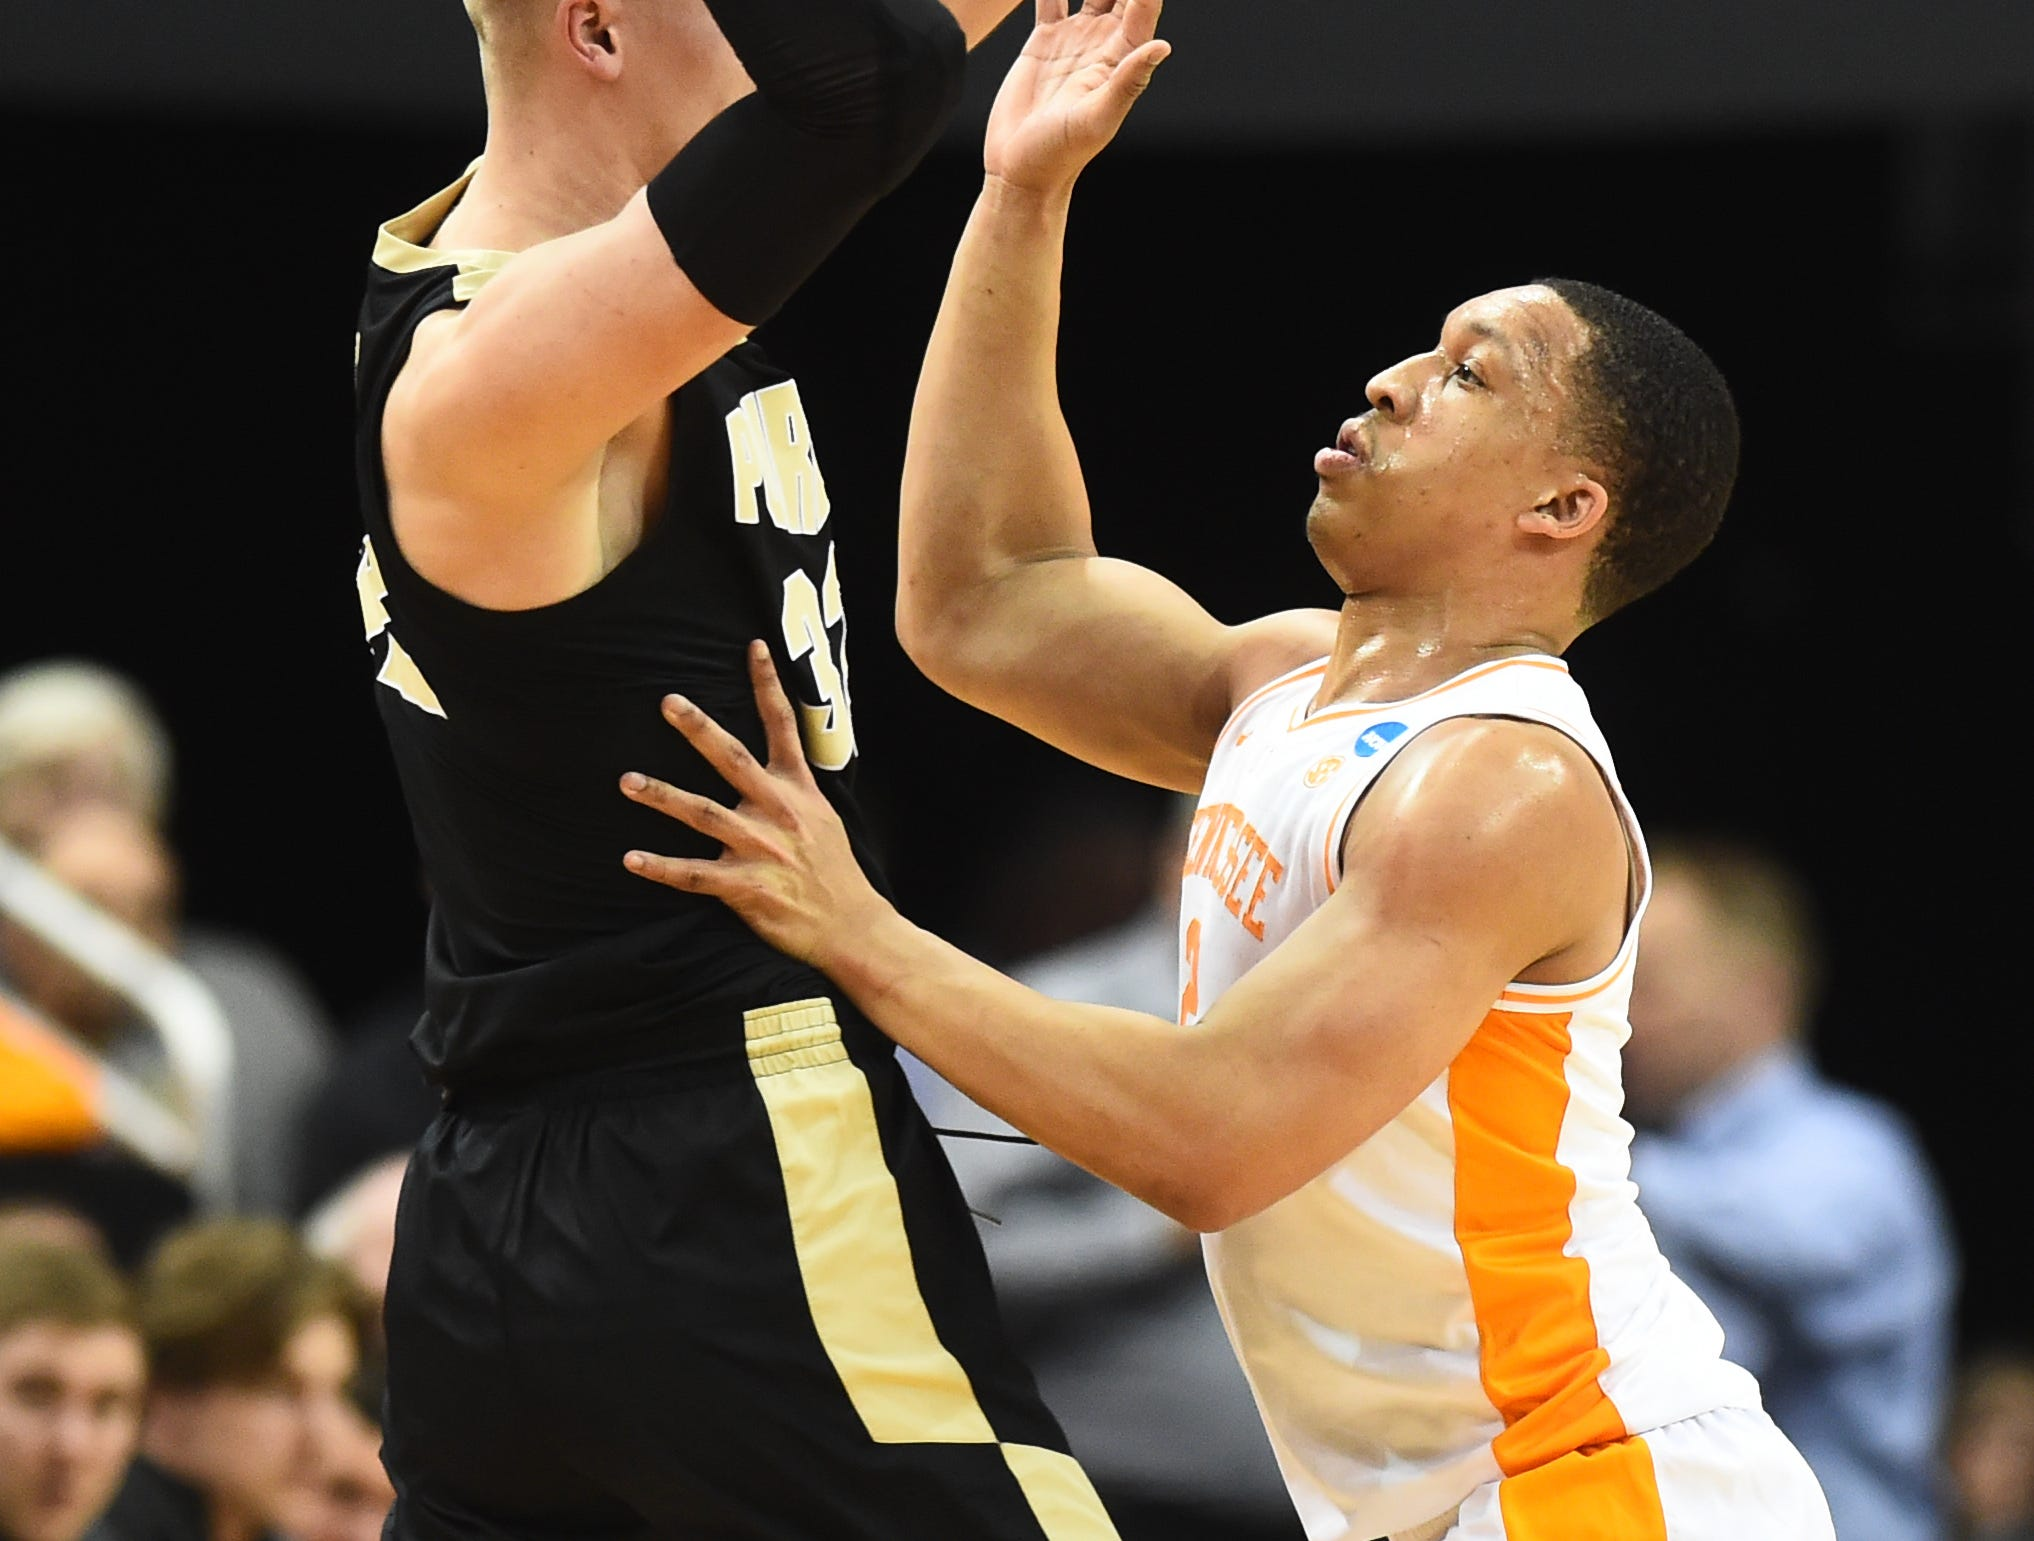 Tennessee forward Grant Williams (2) defends as Purdue center Matt Haarms (32) tries to move the ball during the first half of their Sweet 16 game in the NCAA Tournament Thursday, March 28, 2019, at the KFC Yum! Center in Louisville, Ky.